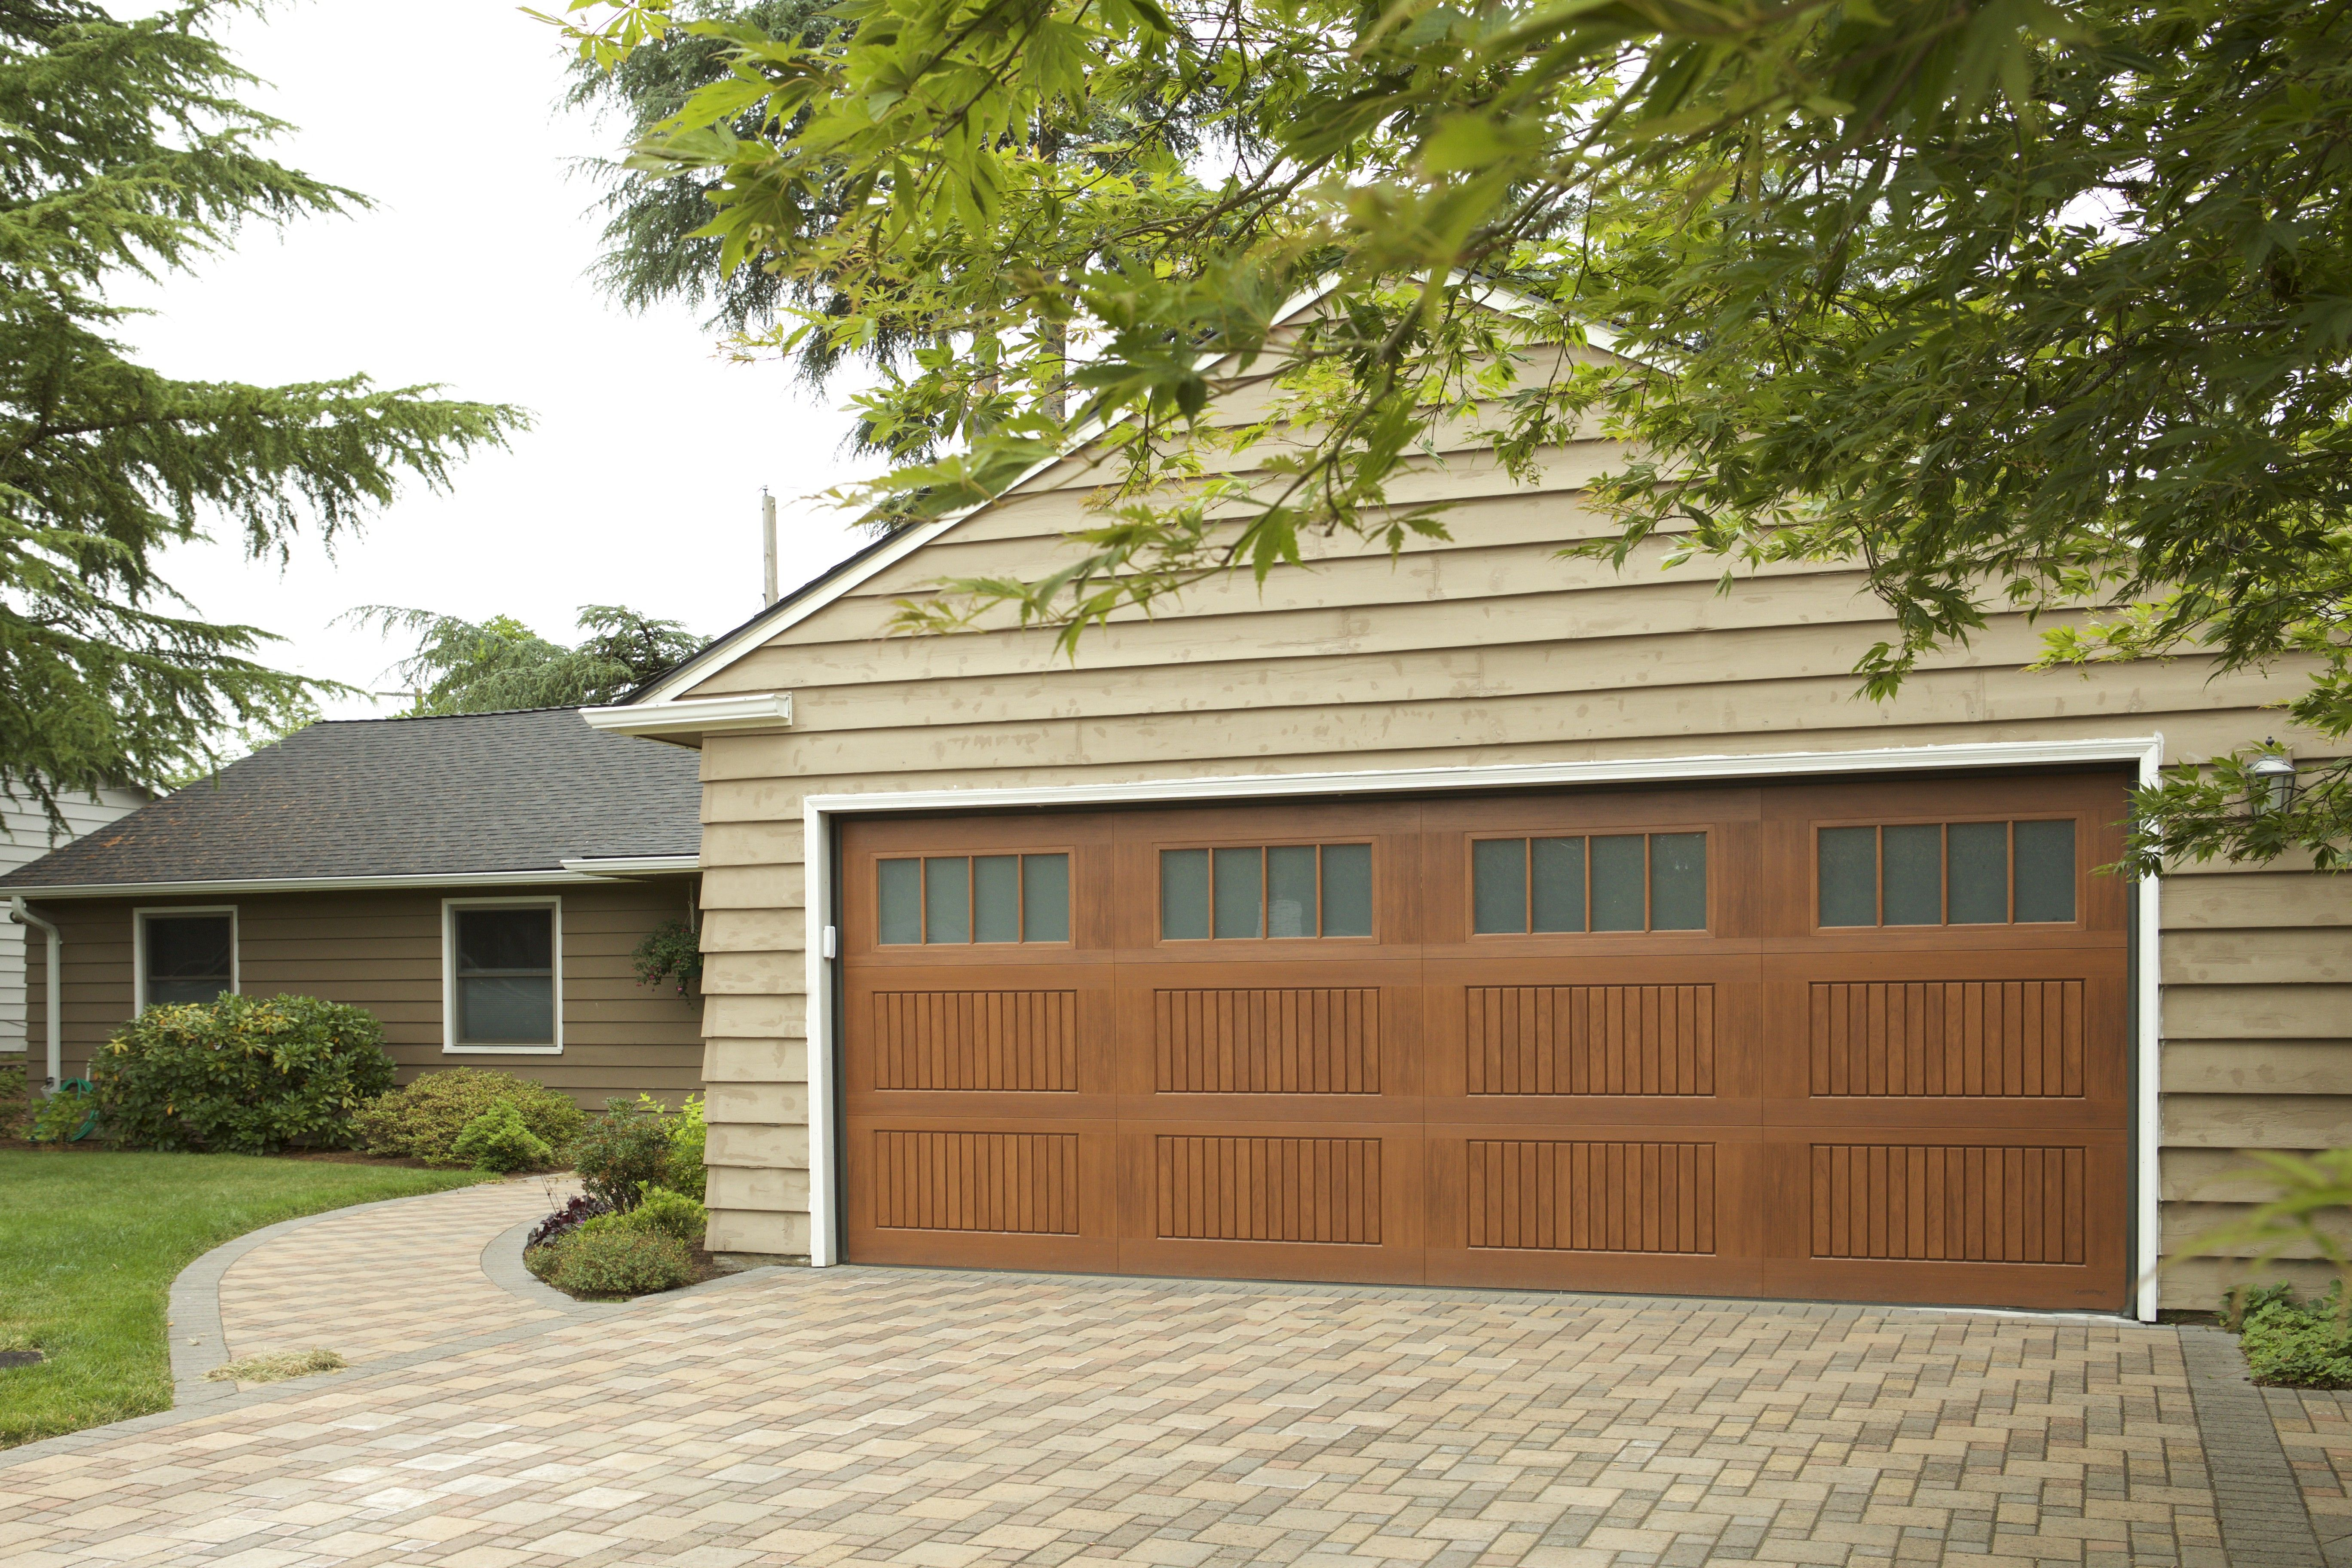 Beautiful Faux Wood Garage Door In 2020 Wood Garage Doors Fiberglass Garage Doors Garage Doors